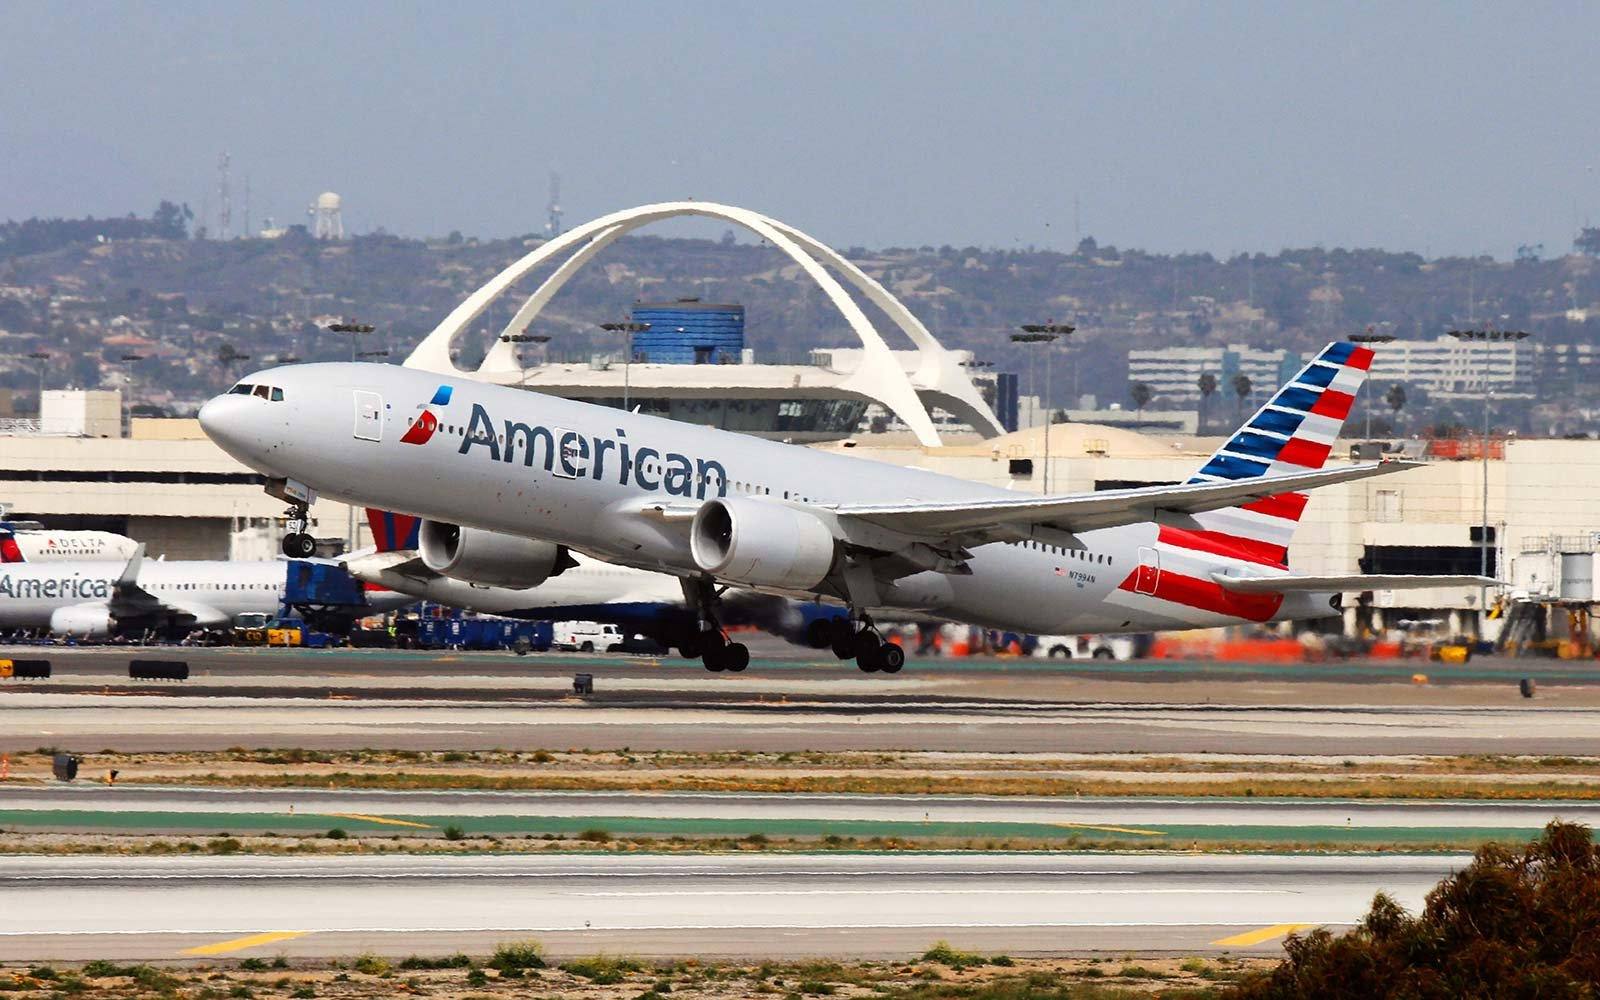 American Airlines Passengers Got Free Pizza For Their 24